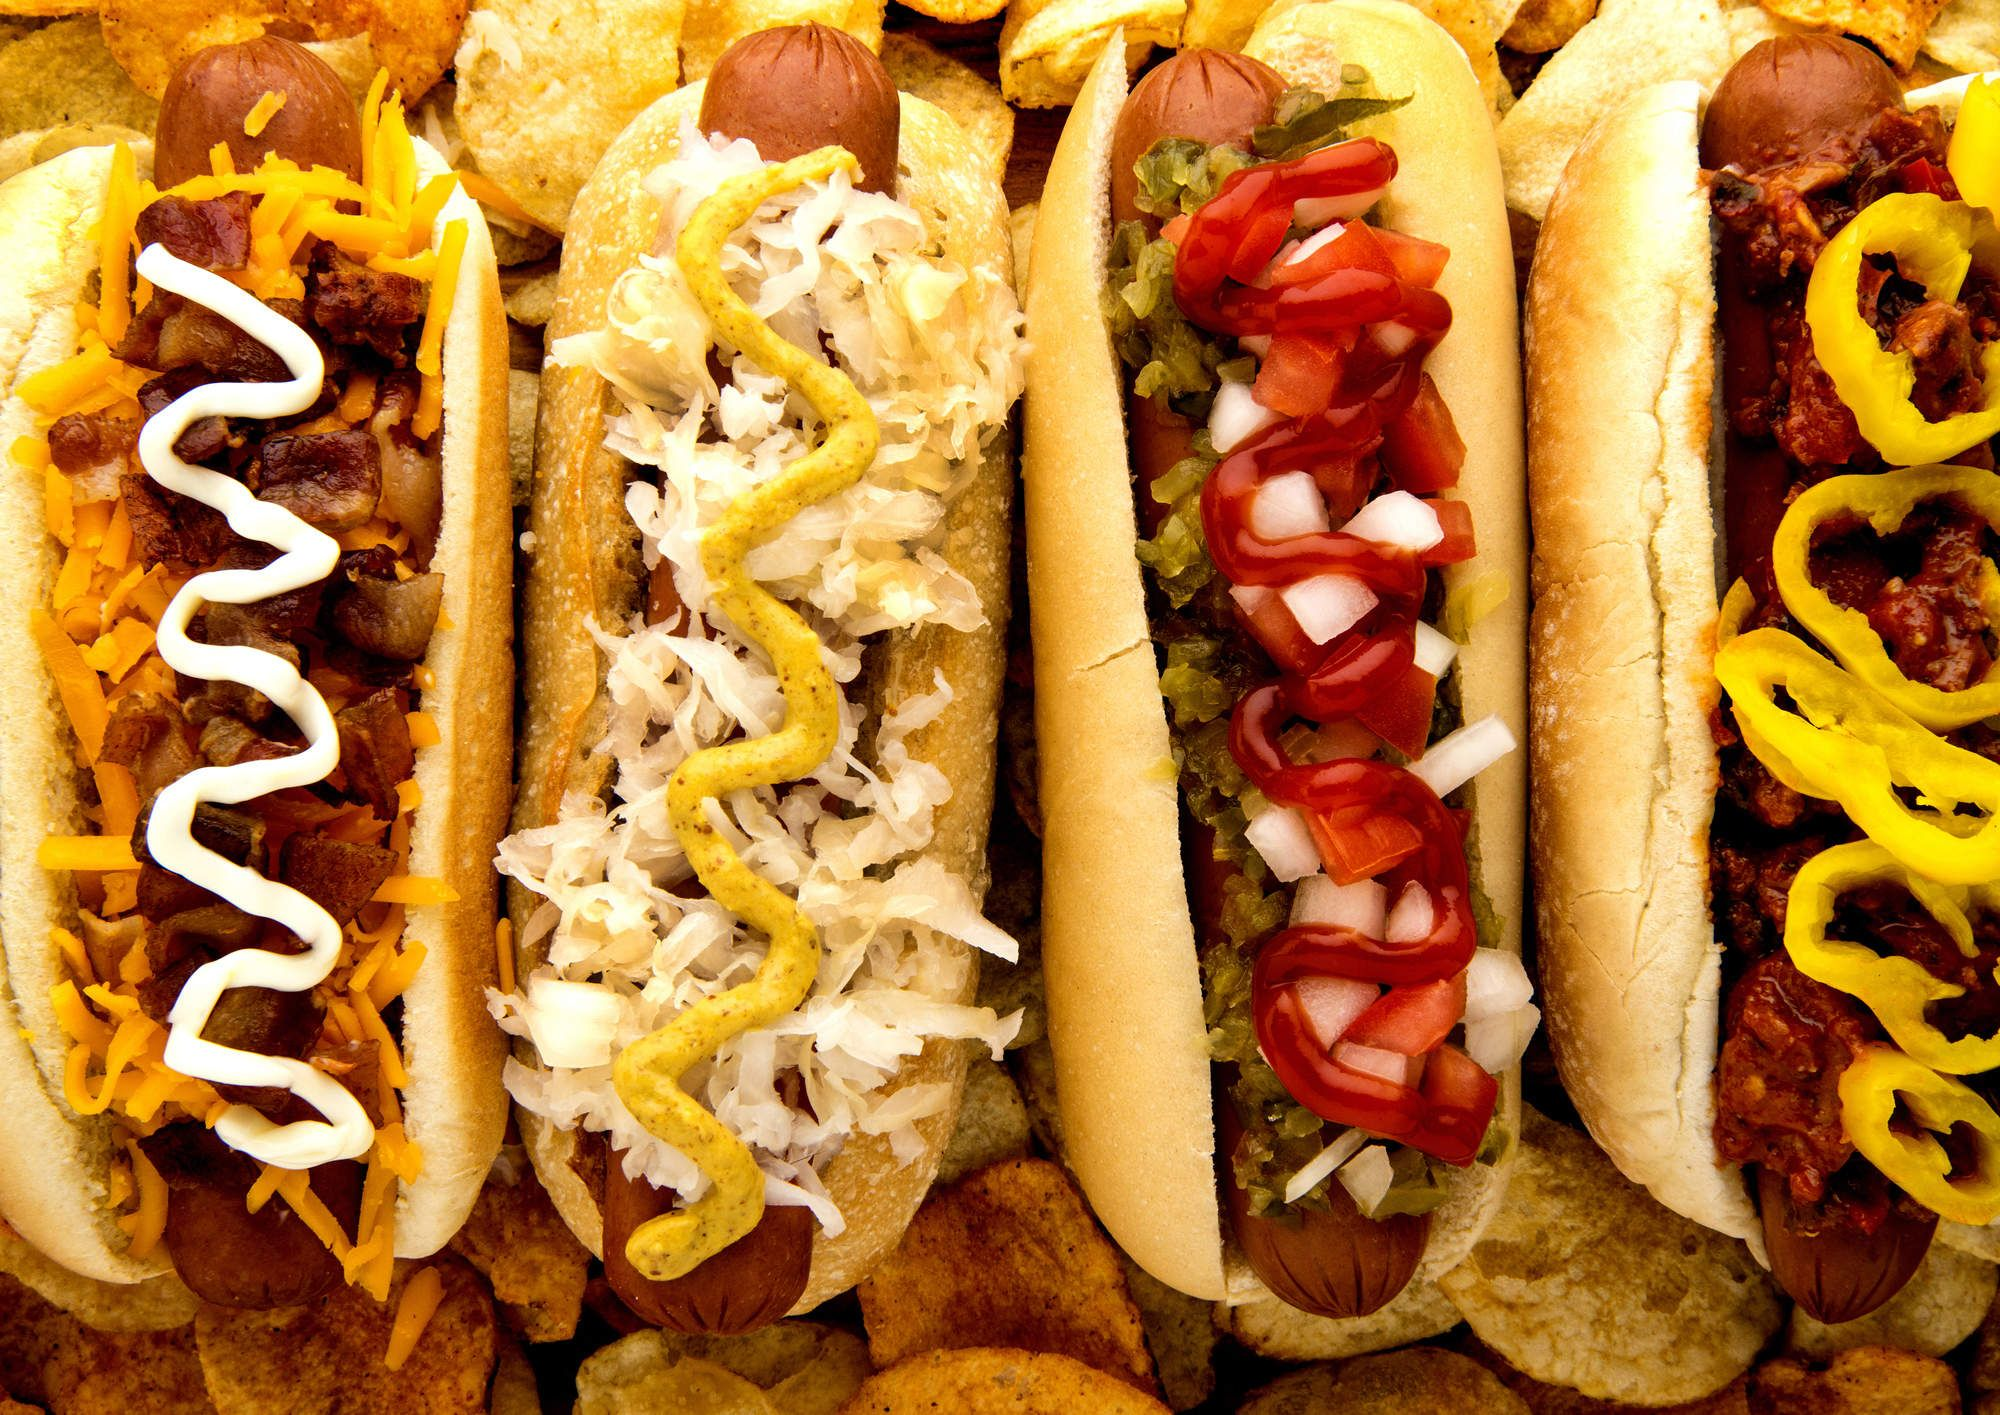 Picture Of A Coney Dog